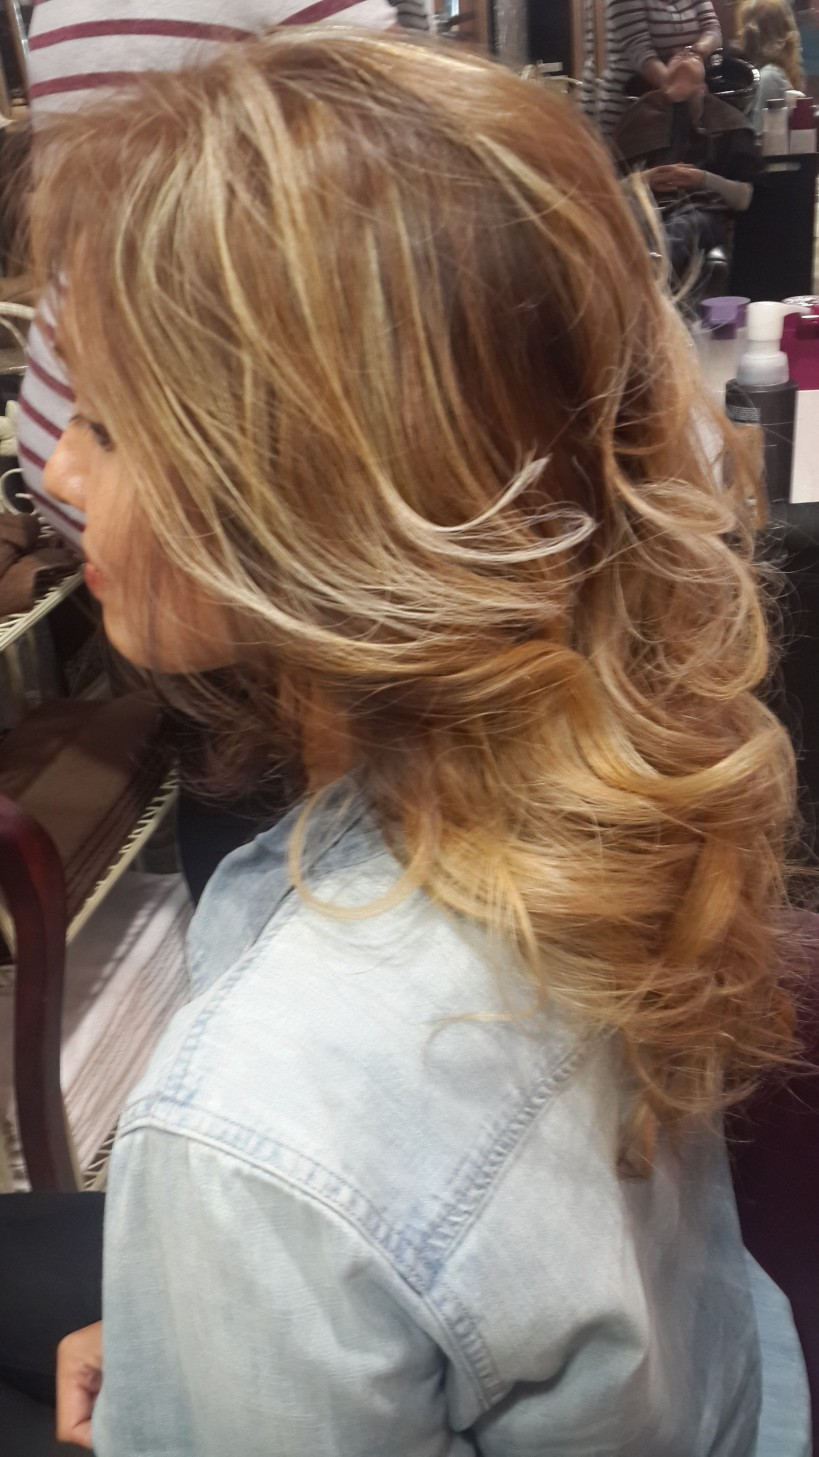 Blonde First time (Side)